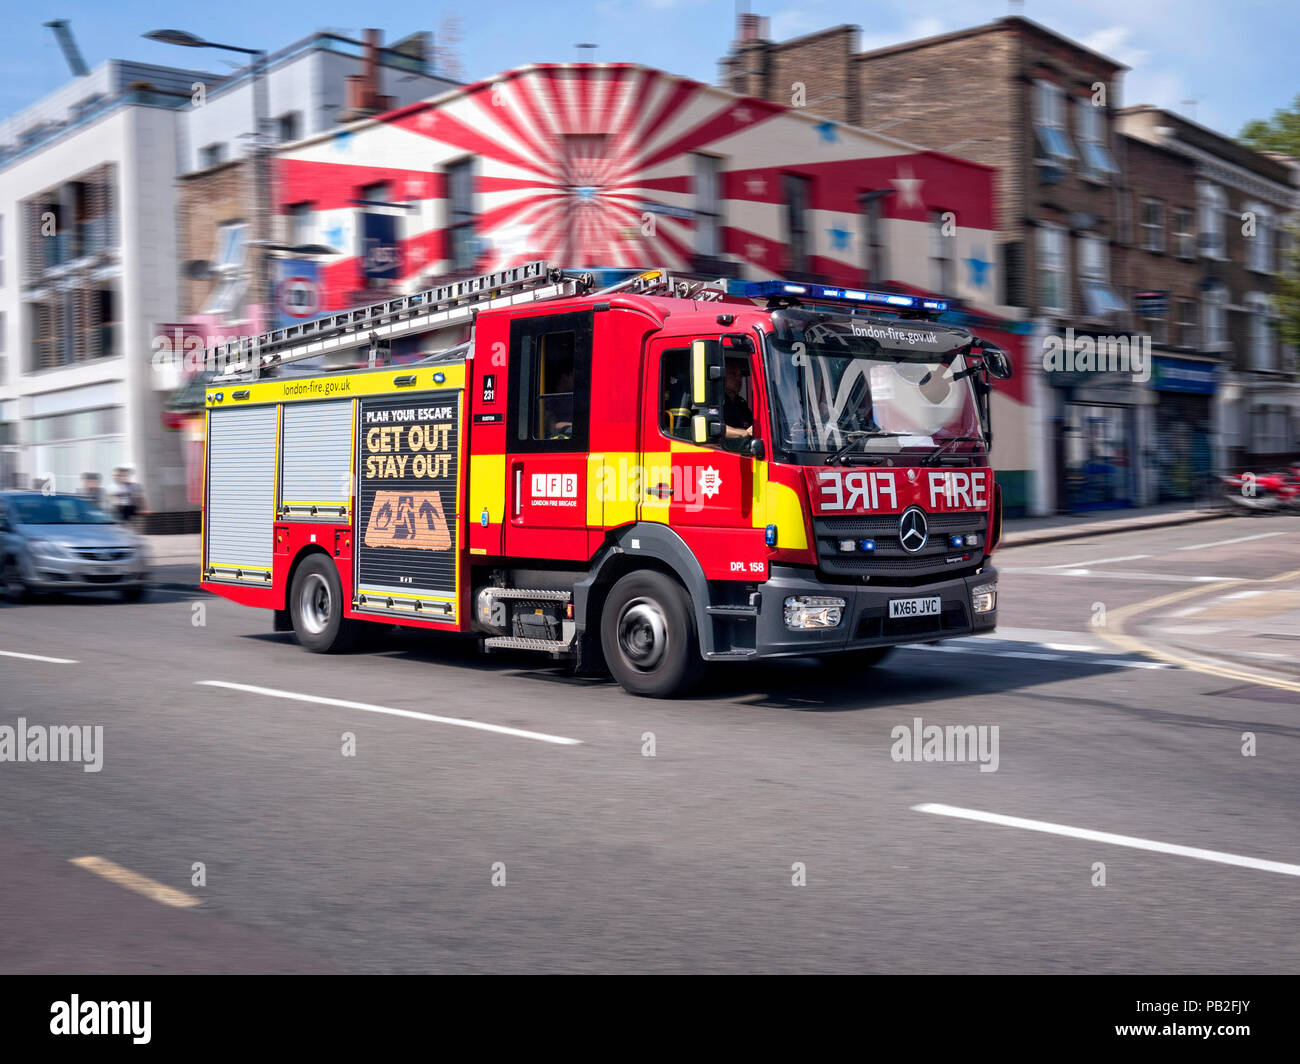 London Fire Brigade fire engine responding to an emergency call in Camden London UK - Stock Image